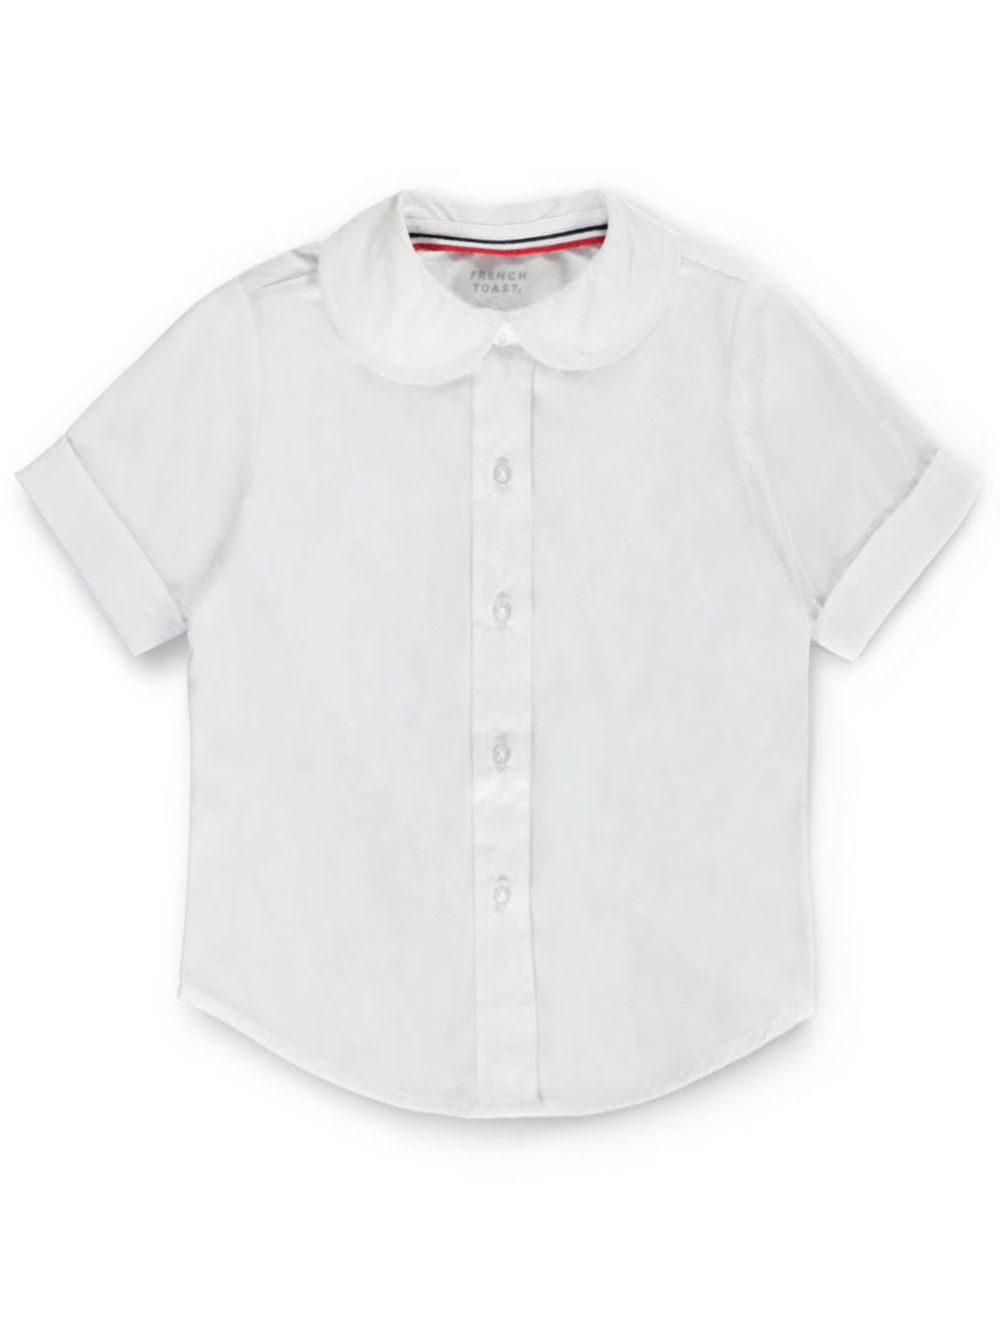 French Toast School Uniform Big Girls' S/S Peter Pan Fitted Shirt (Sizes 7 - 16) - white, 7